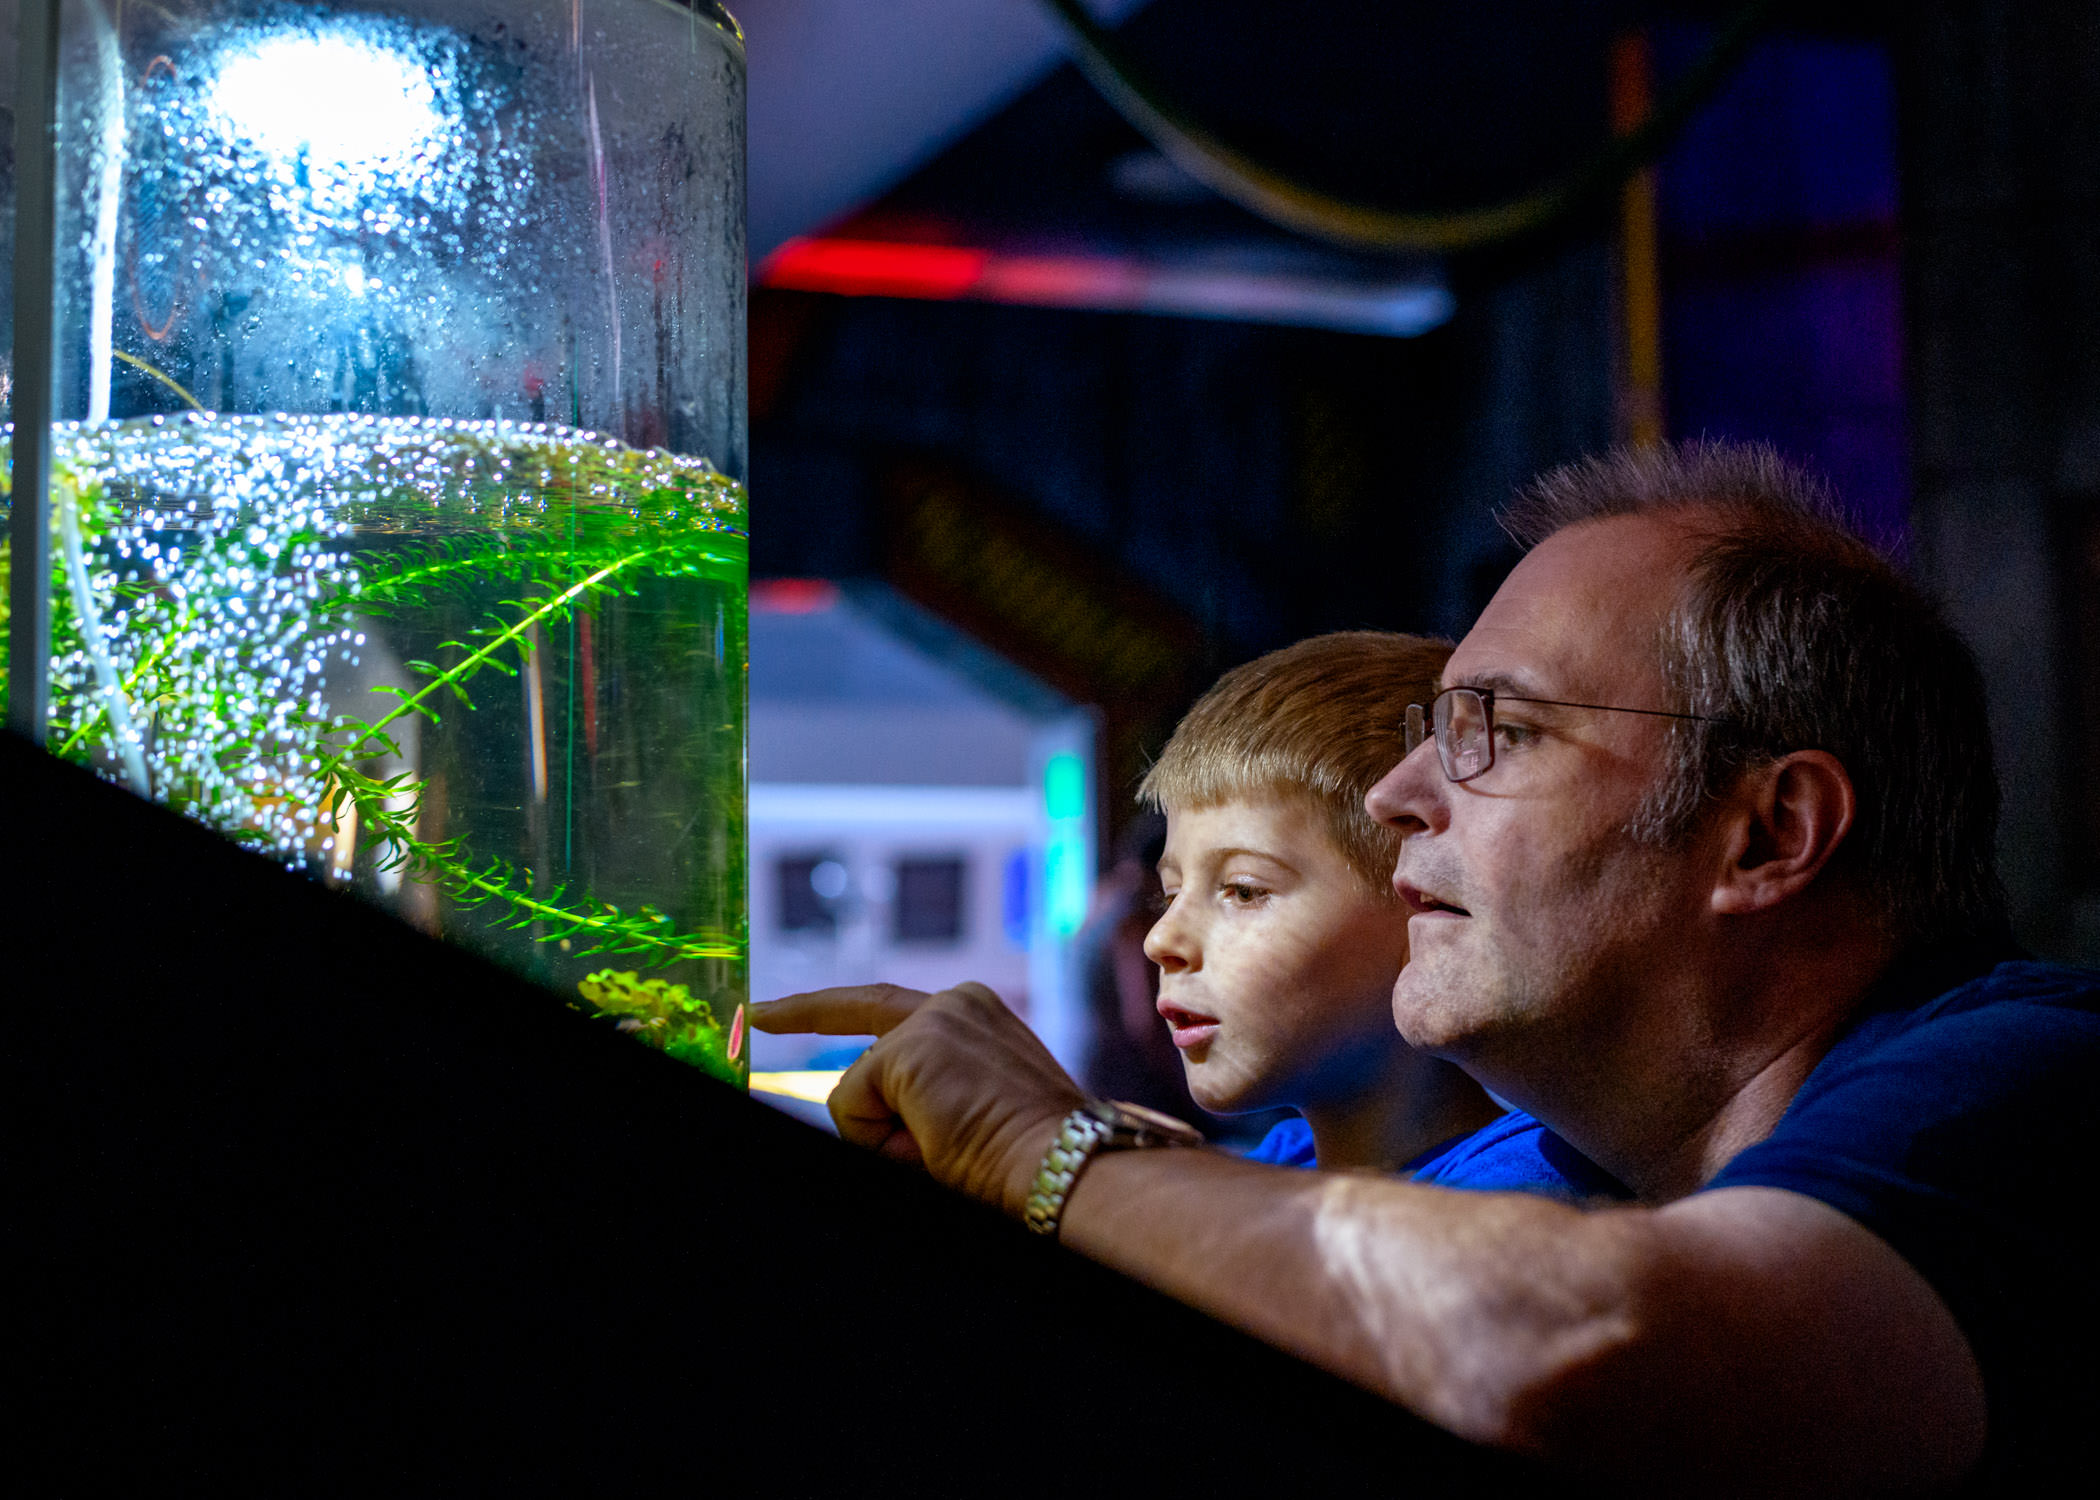 Son & Father looking at aquarium